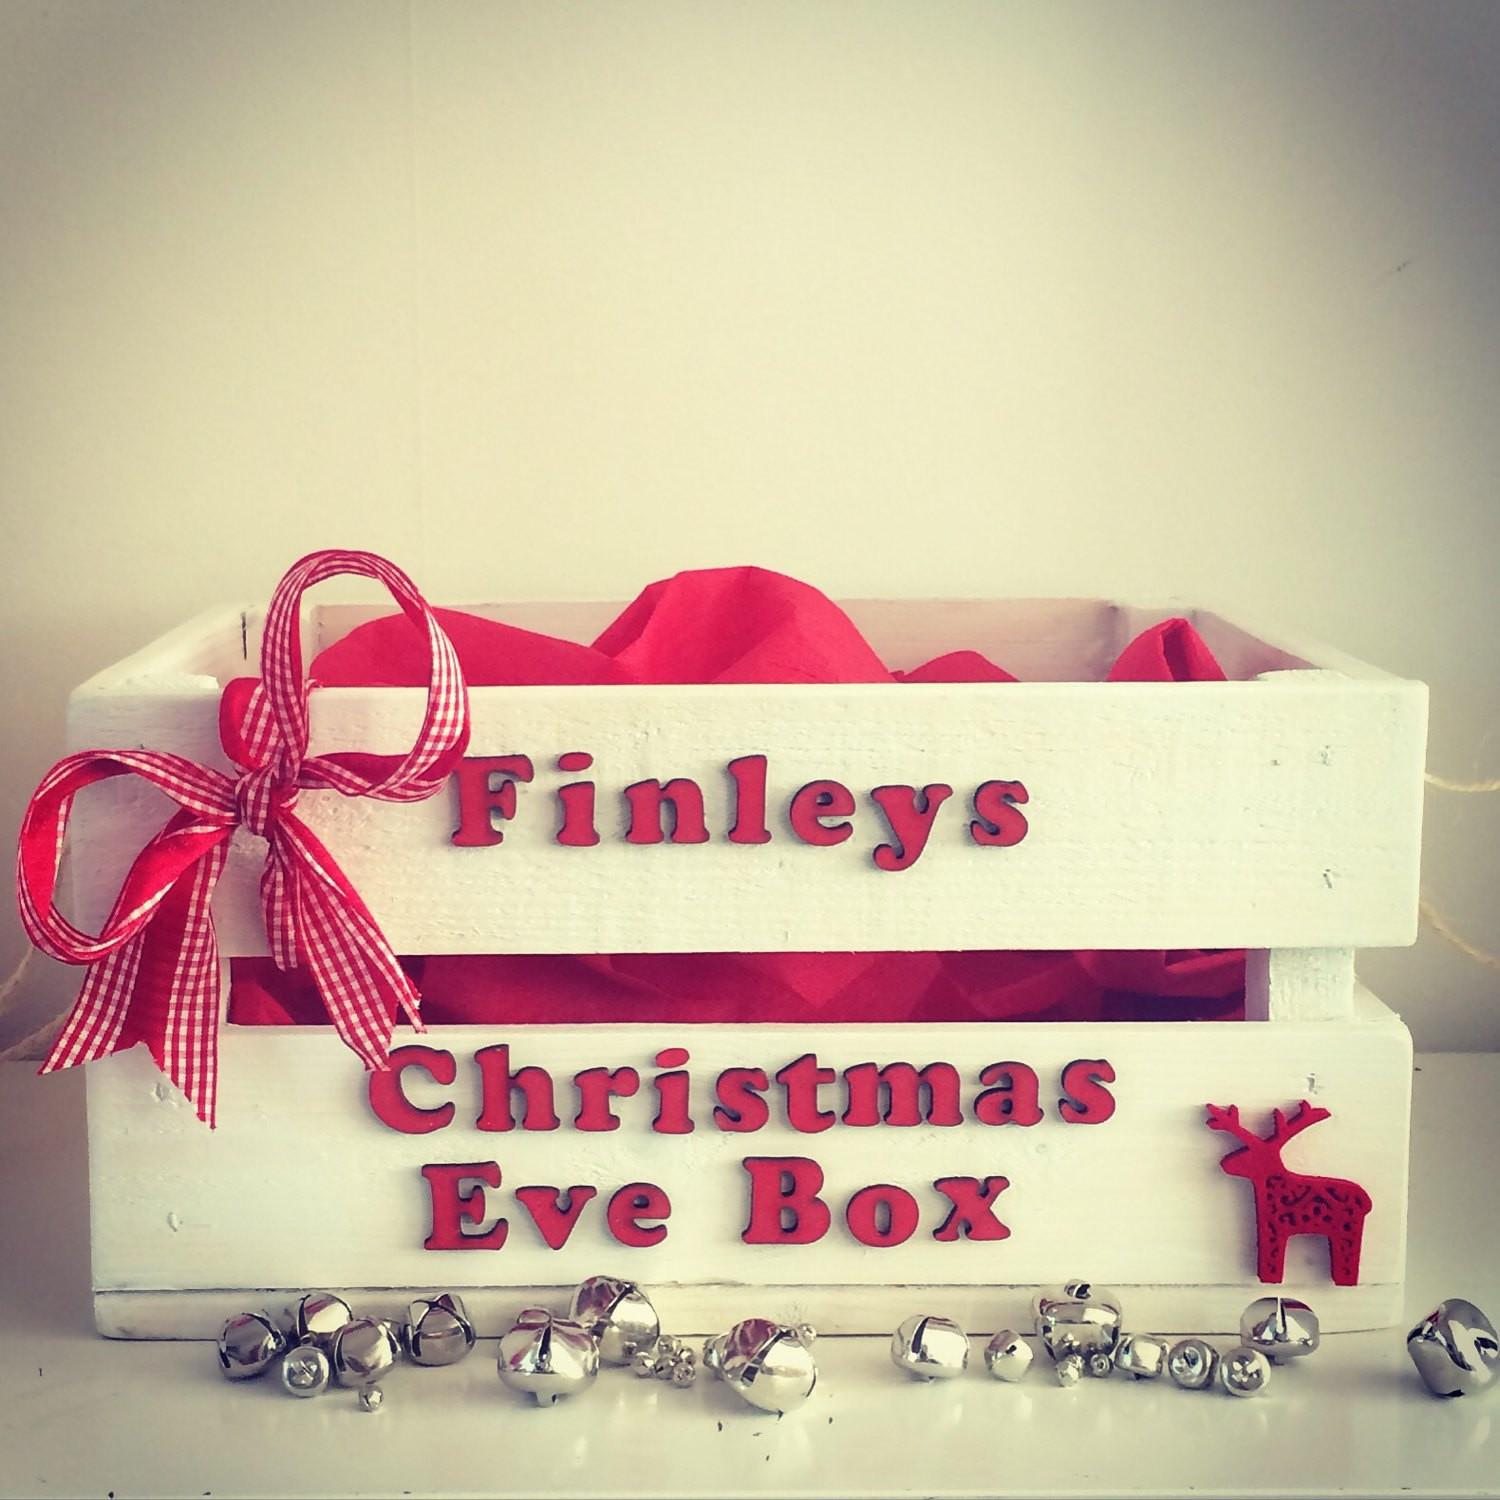 Christmas Eve Box Gift Wooden Crate